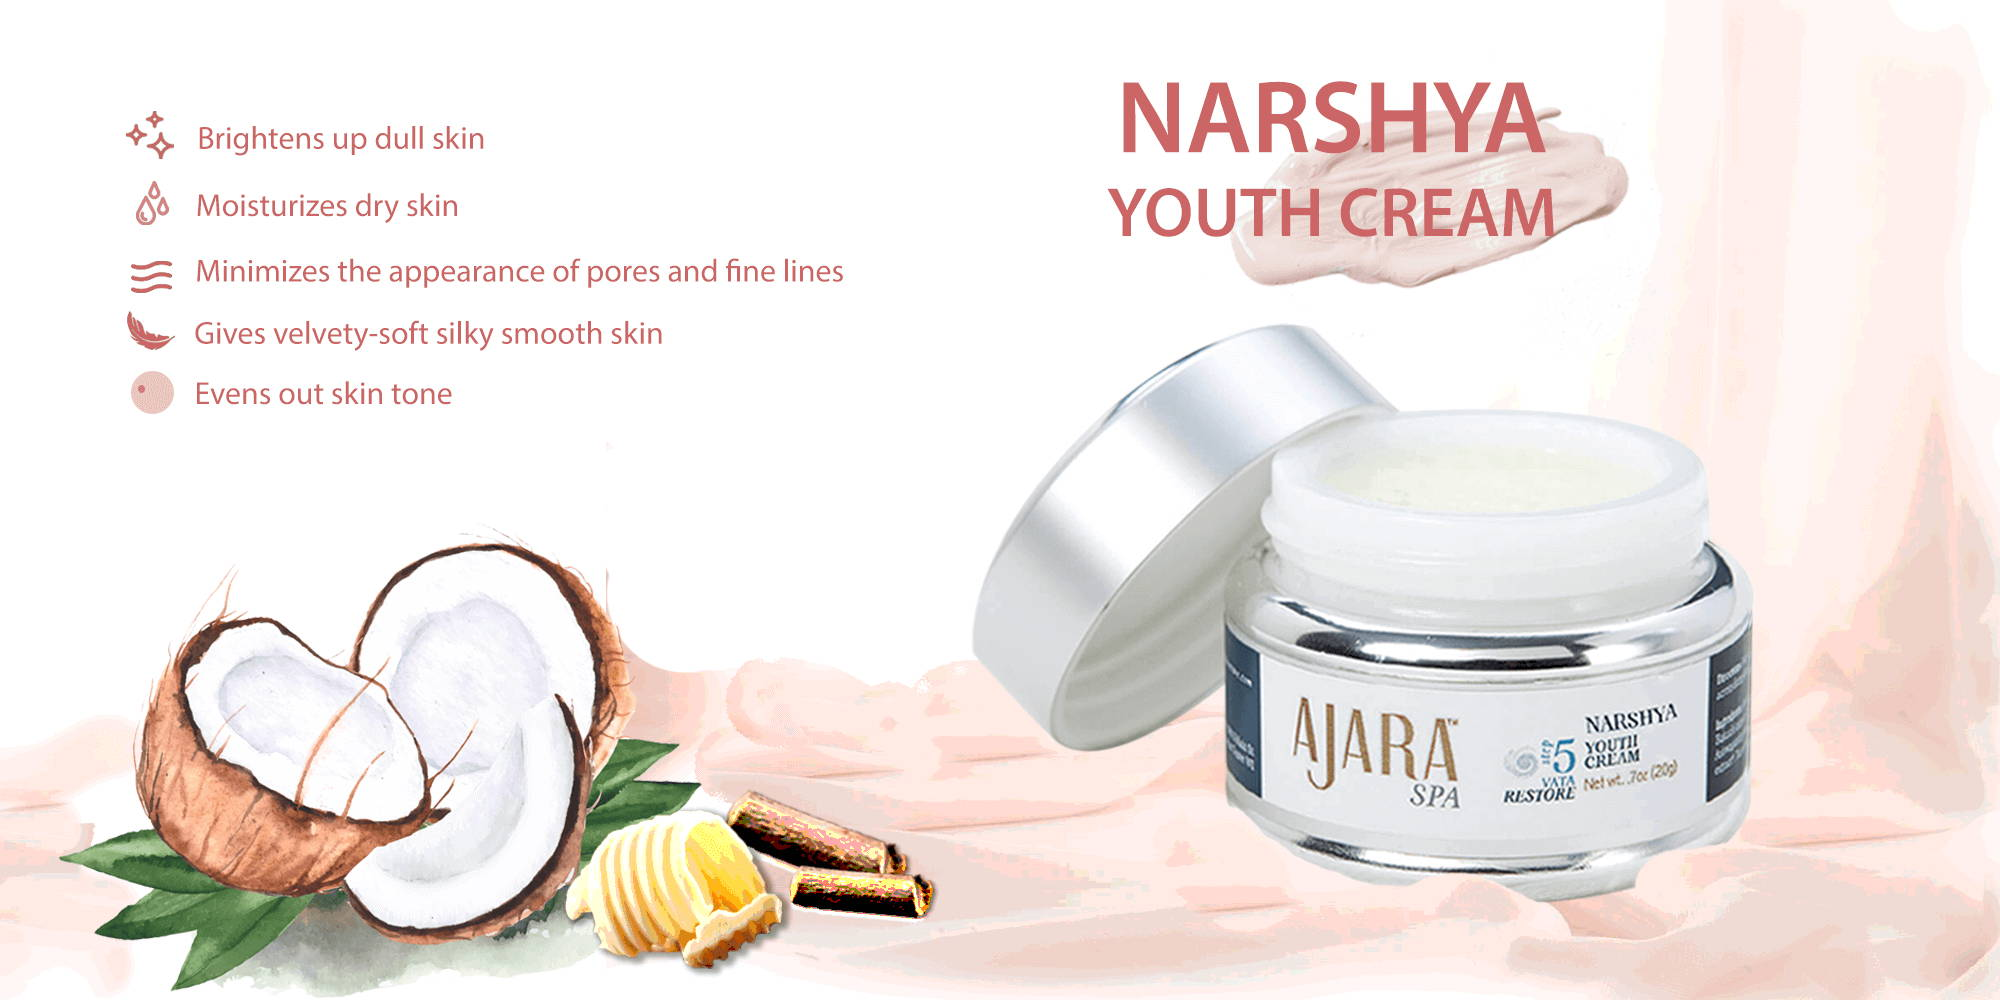 Get the benefits of 5 products in 1 with Narshya Youth Cream